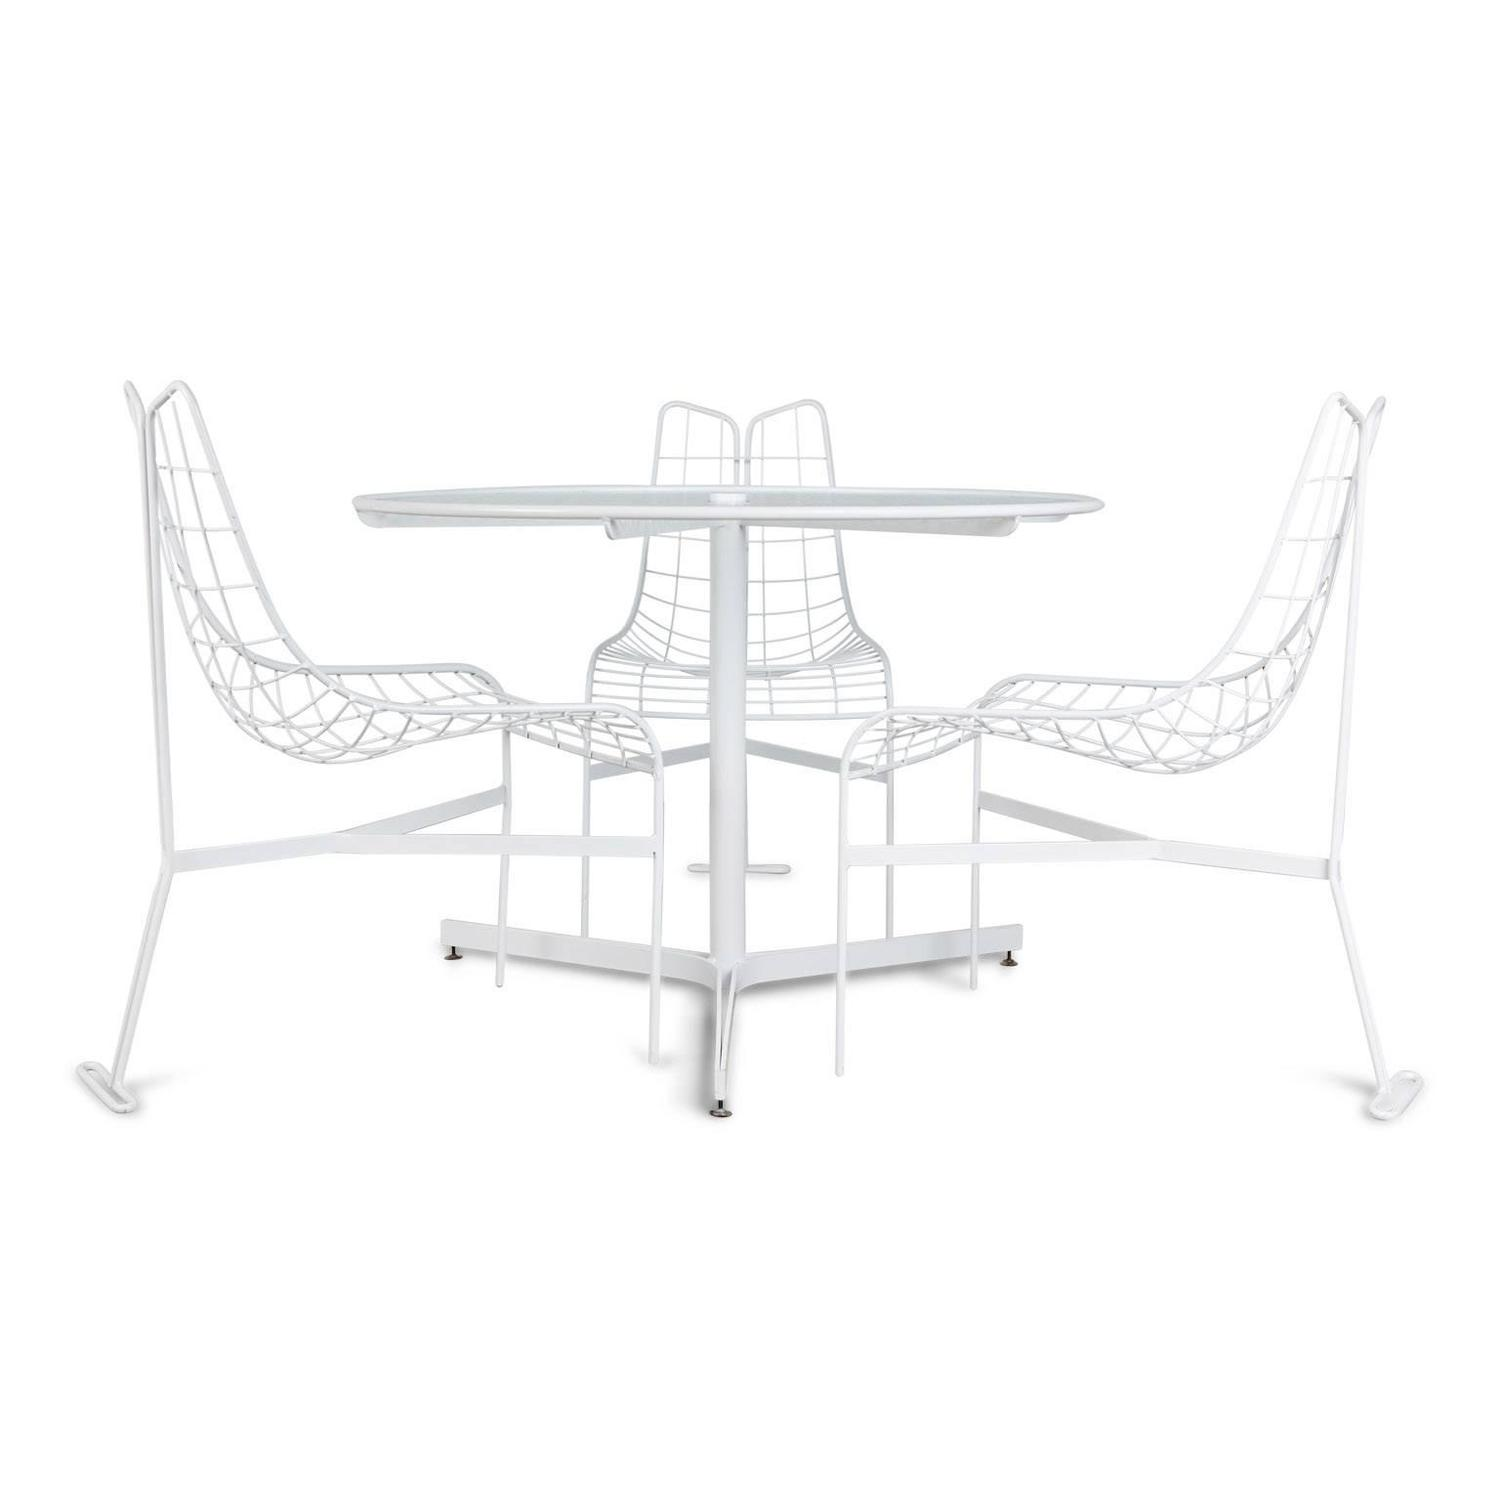 Vladimir Kagan Capricorn Outdoor Dining Chairs And Table